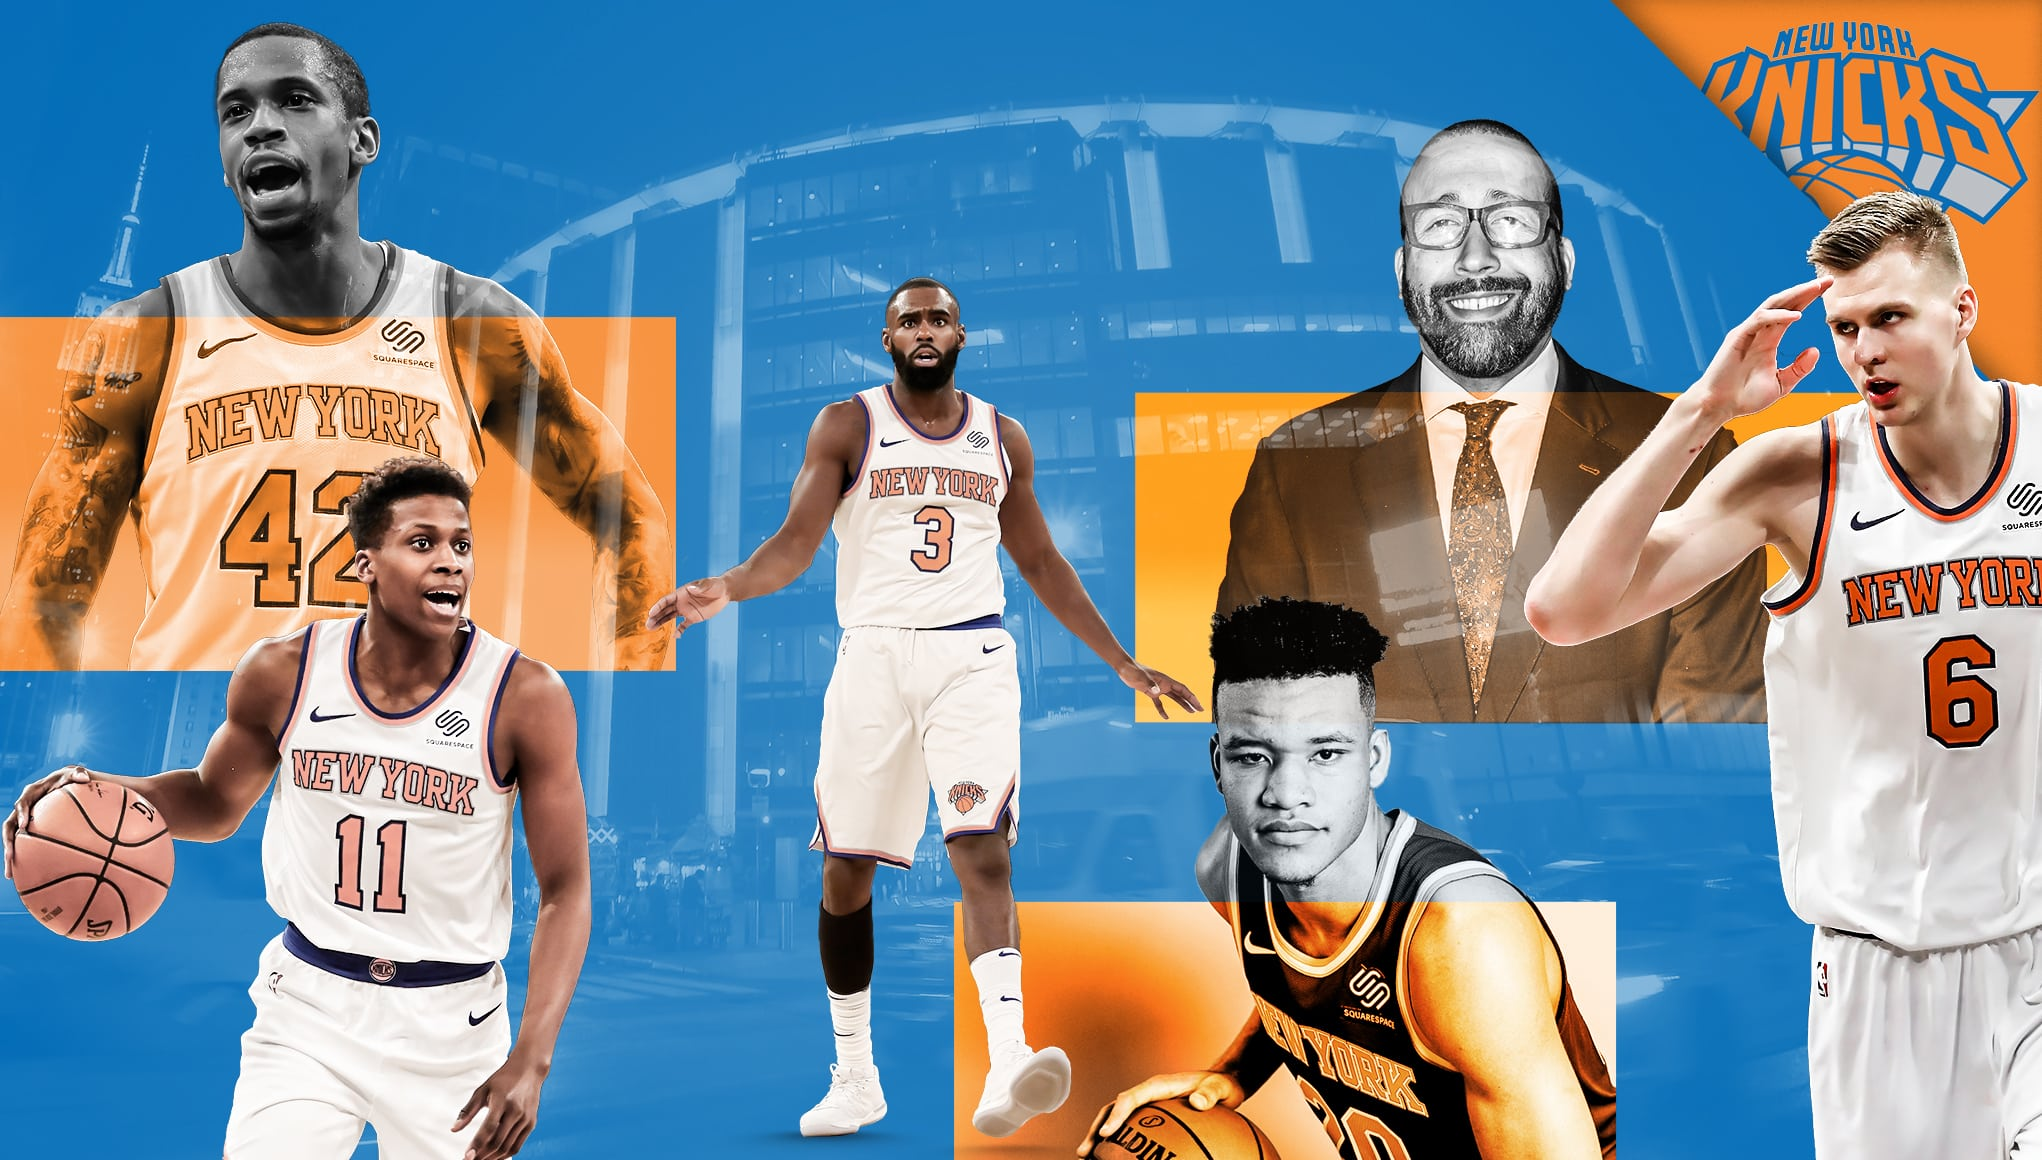 dd0f267bd Elite Sports NY s 2018-19 New York Knicks Season Preview